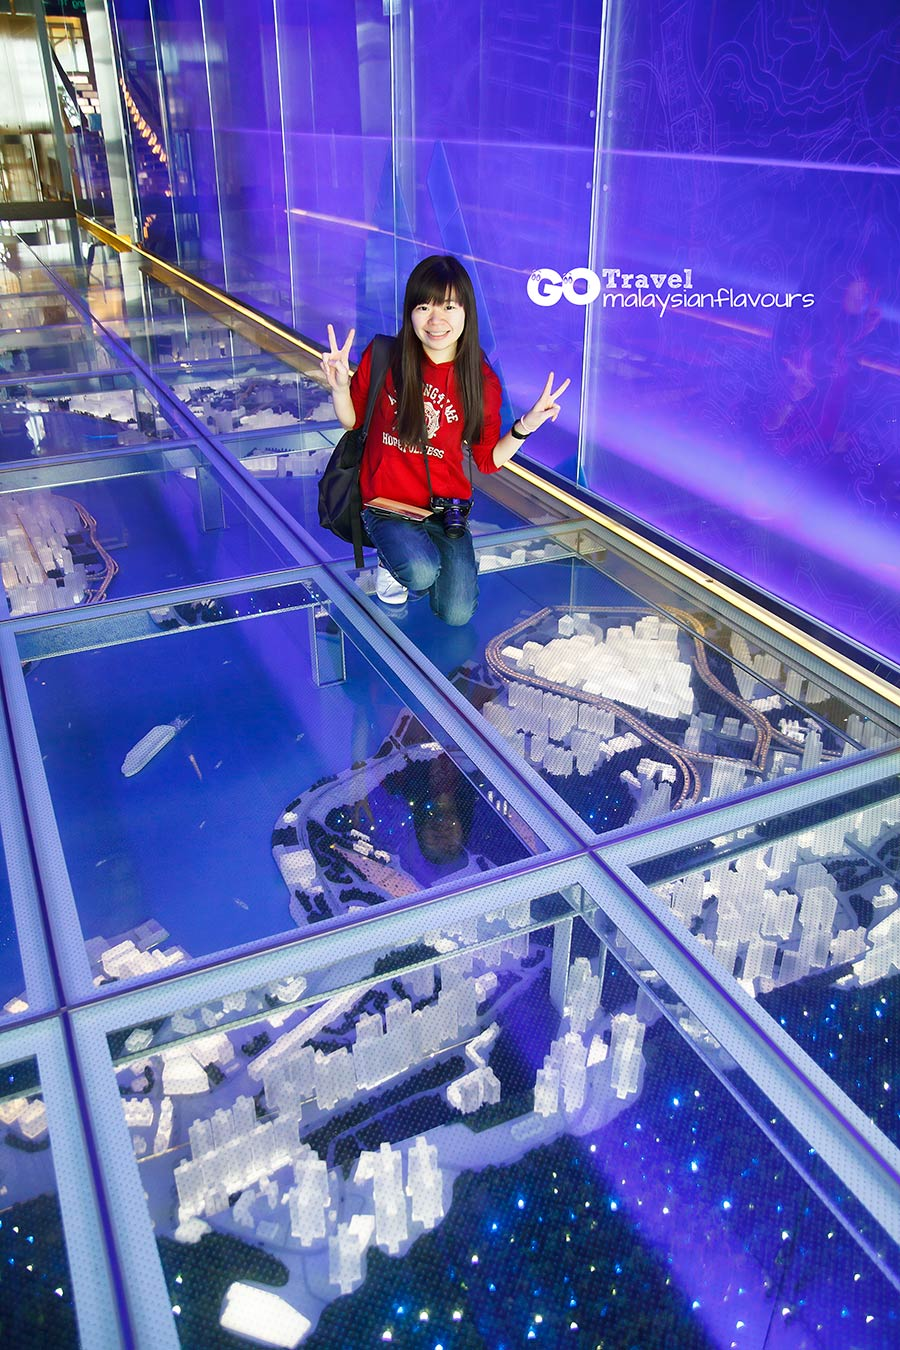 Sky100 Hong Kong 360 Degree Observation Deck 香港天際100